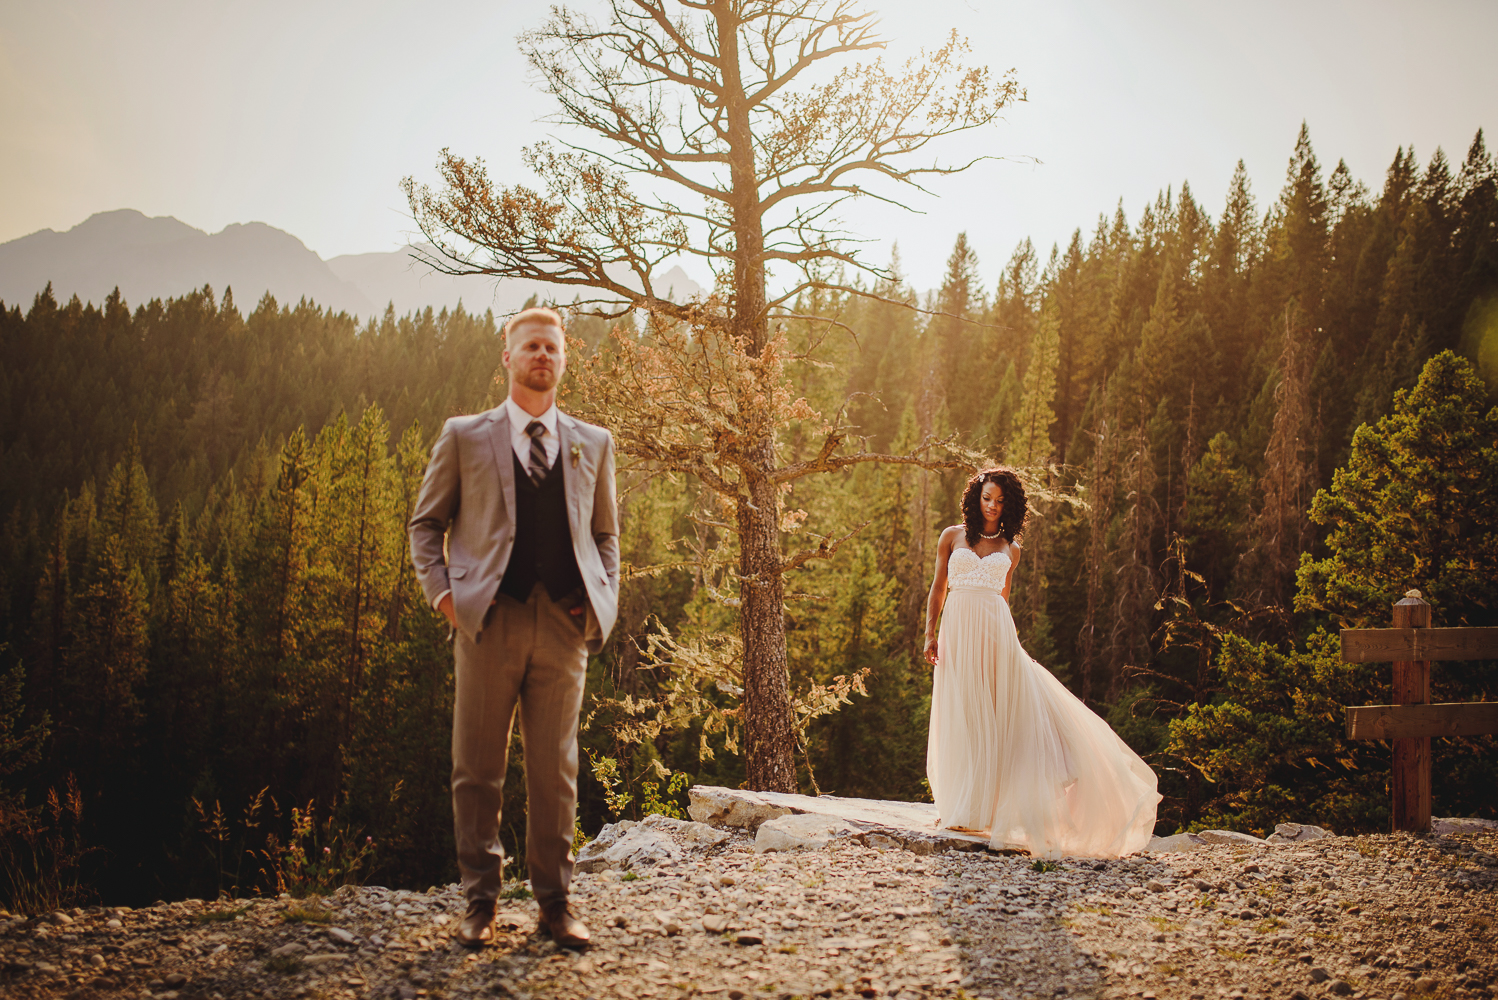 Kelowna-Wedding-Photographer-50.jpg